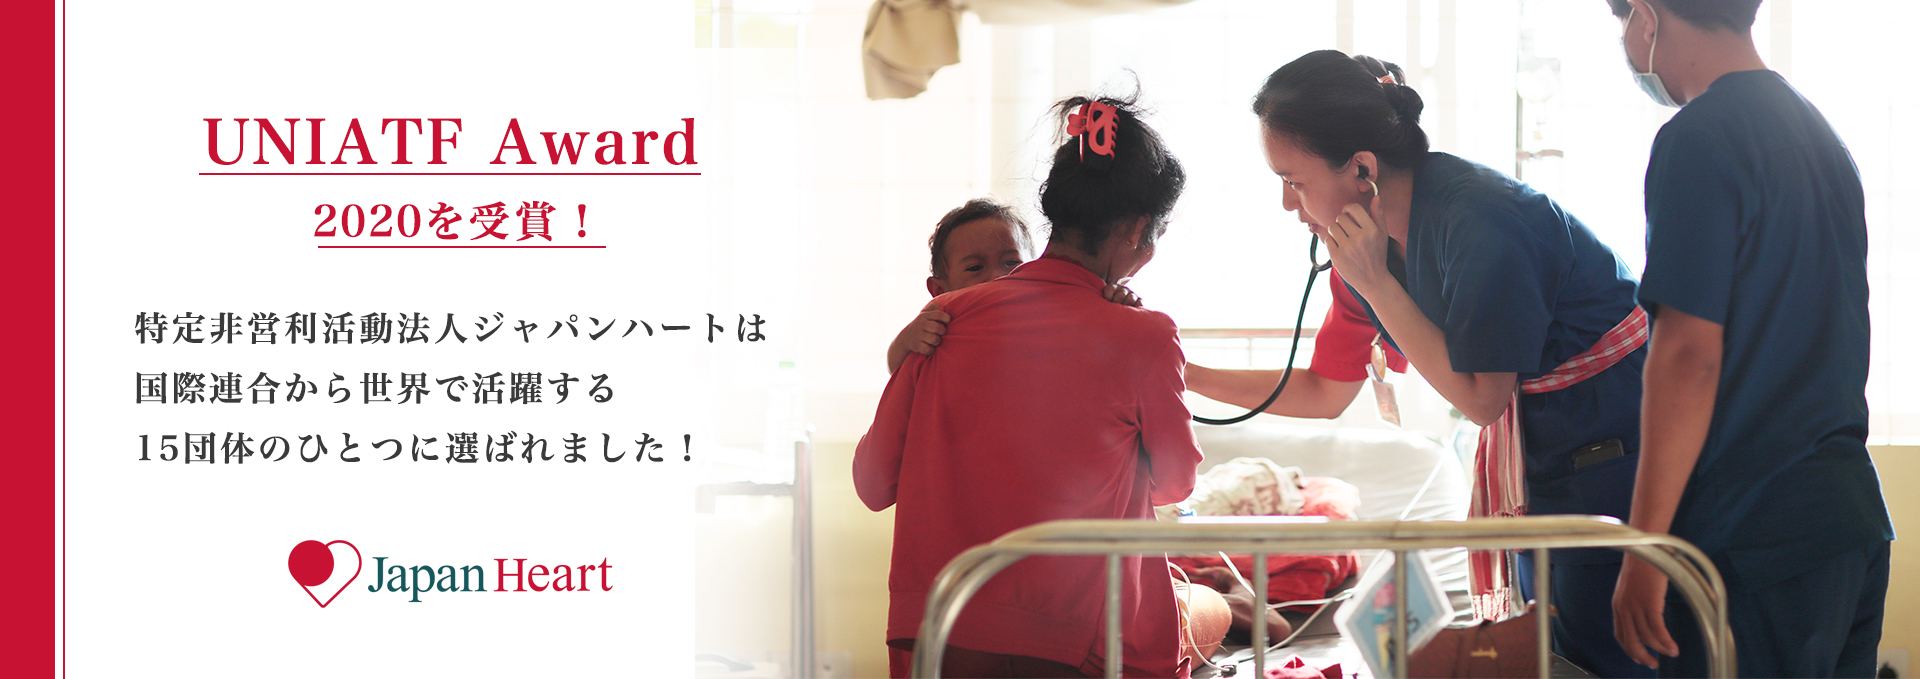 ジャパンハート、国連より「2020 United Nations Inter-Agency Task Force on the Prevention and Control of Non-communicable Diseases Award」を受賞!